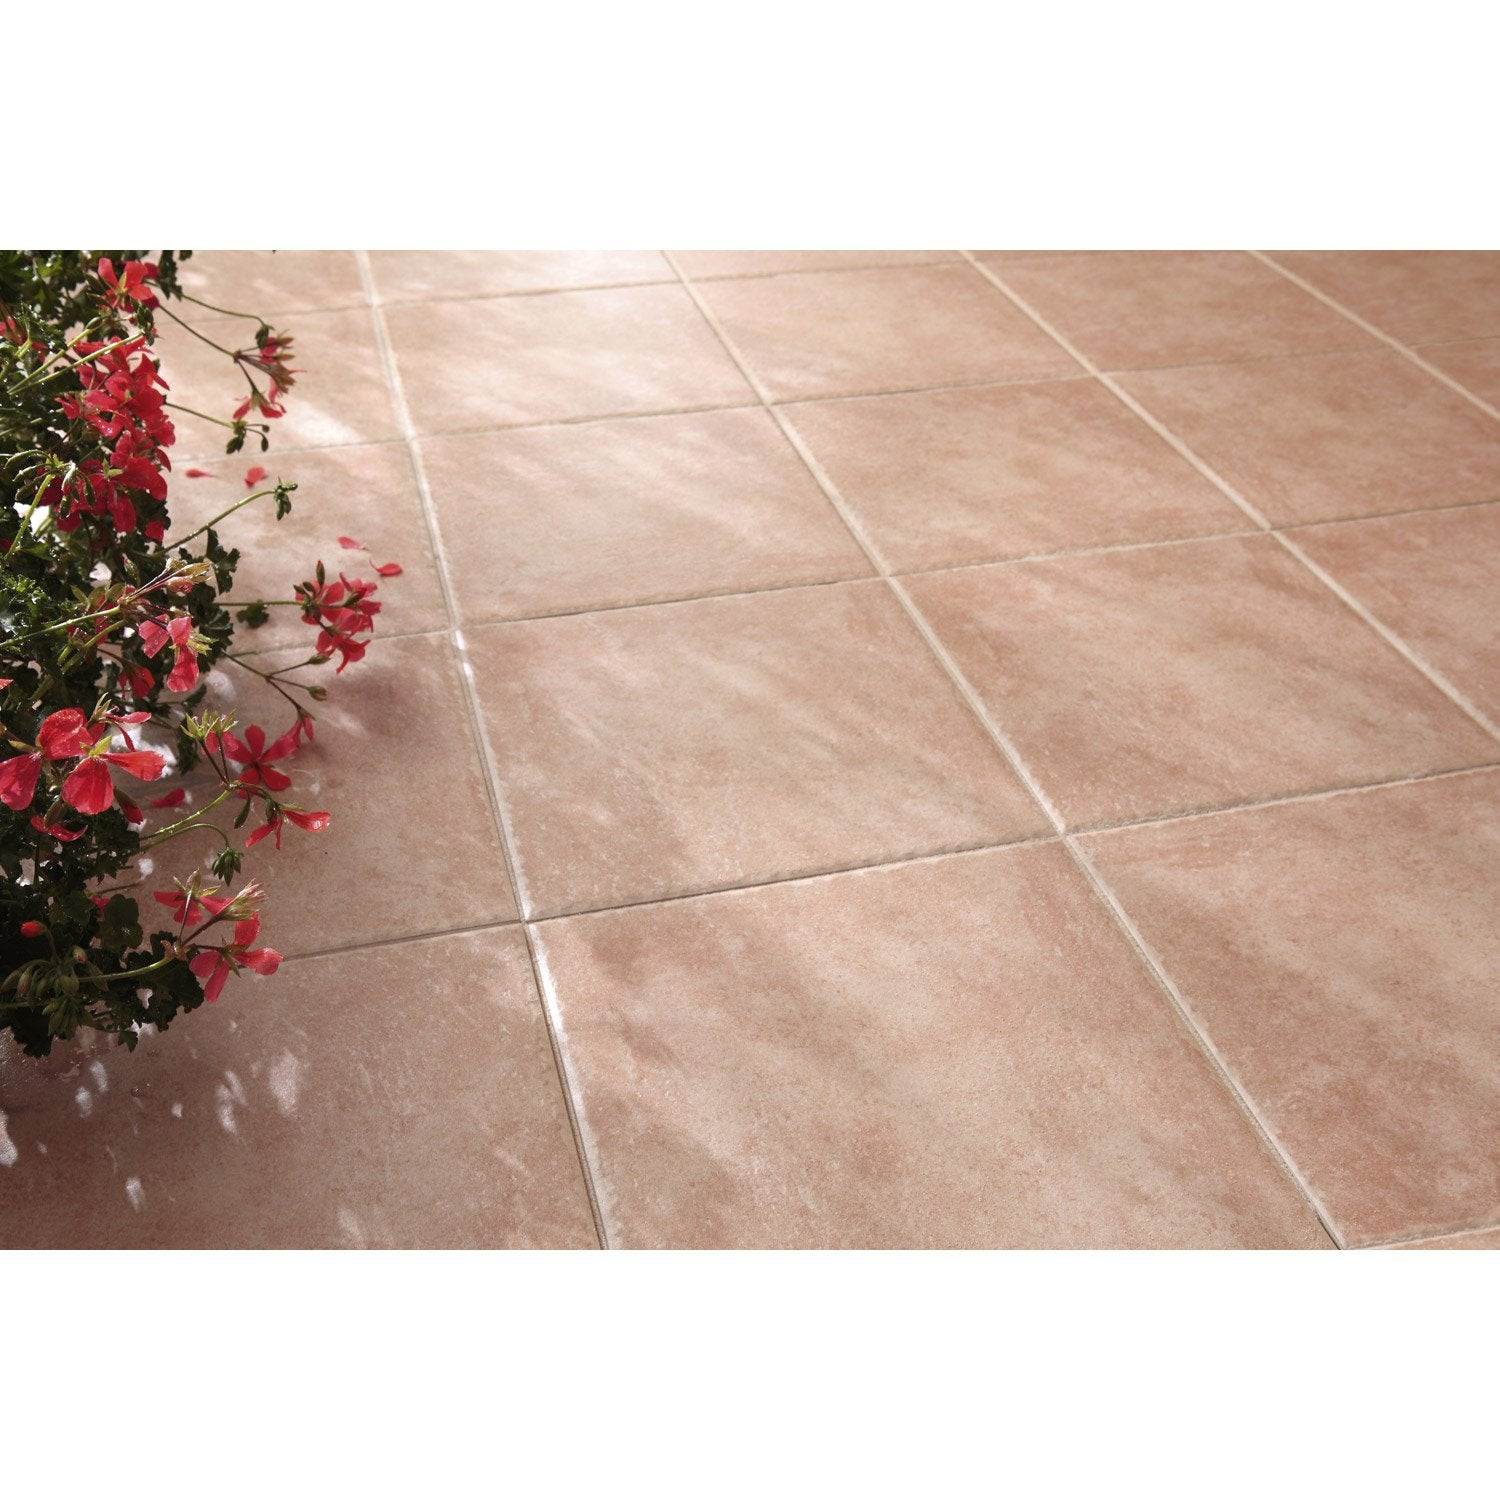 Carrelage sol rose effet pierre michigan x cm for Leroy merlin carrelage terrasse